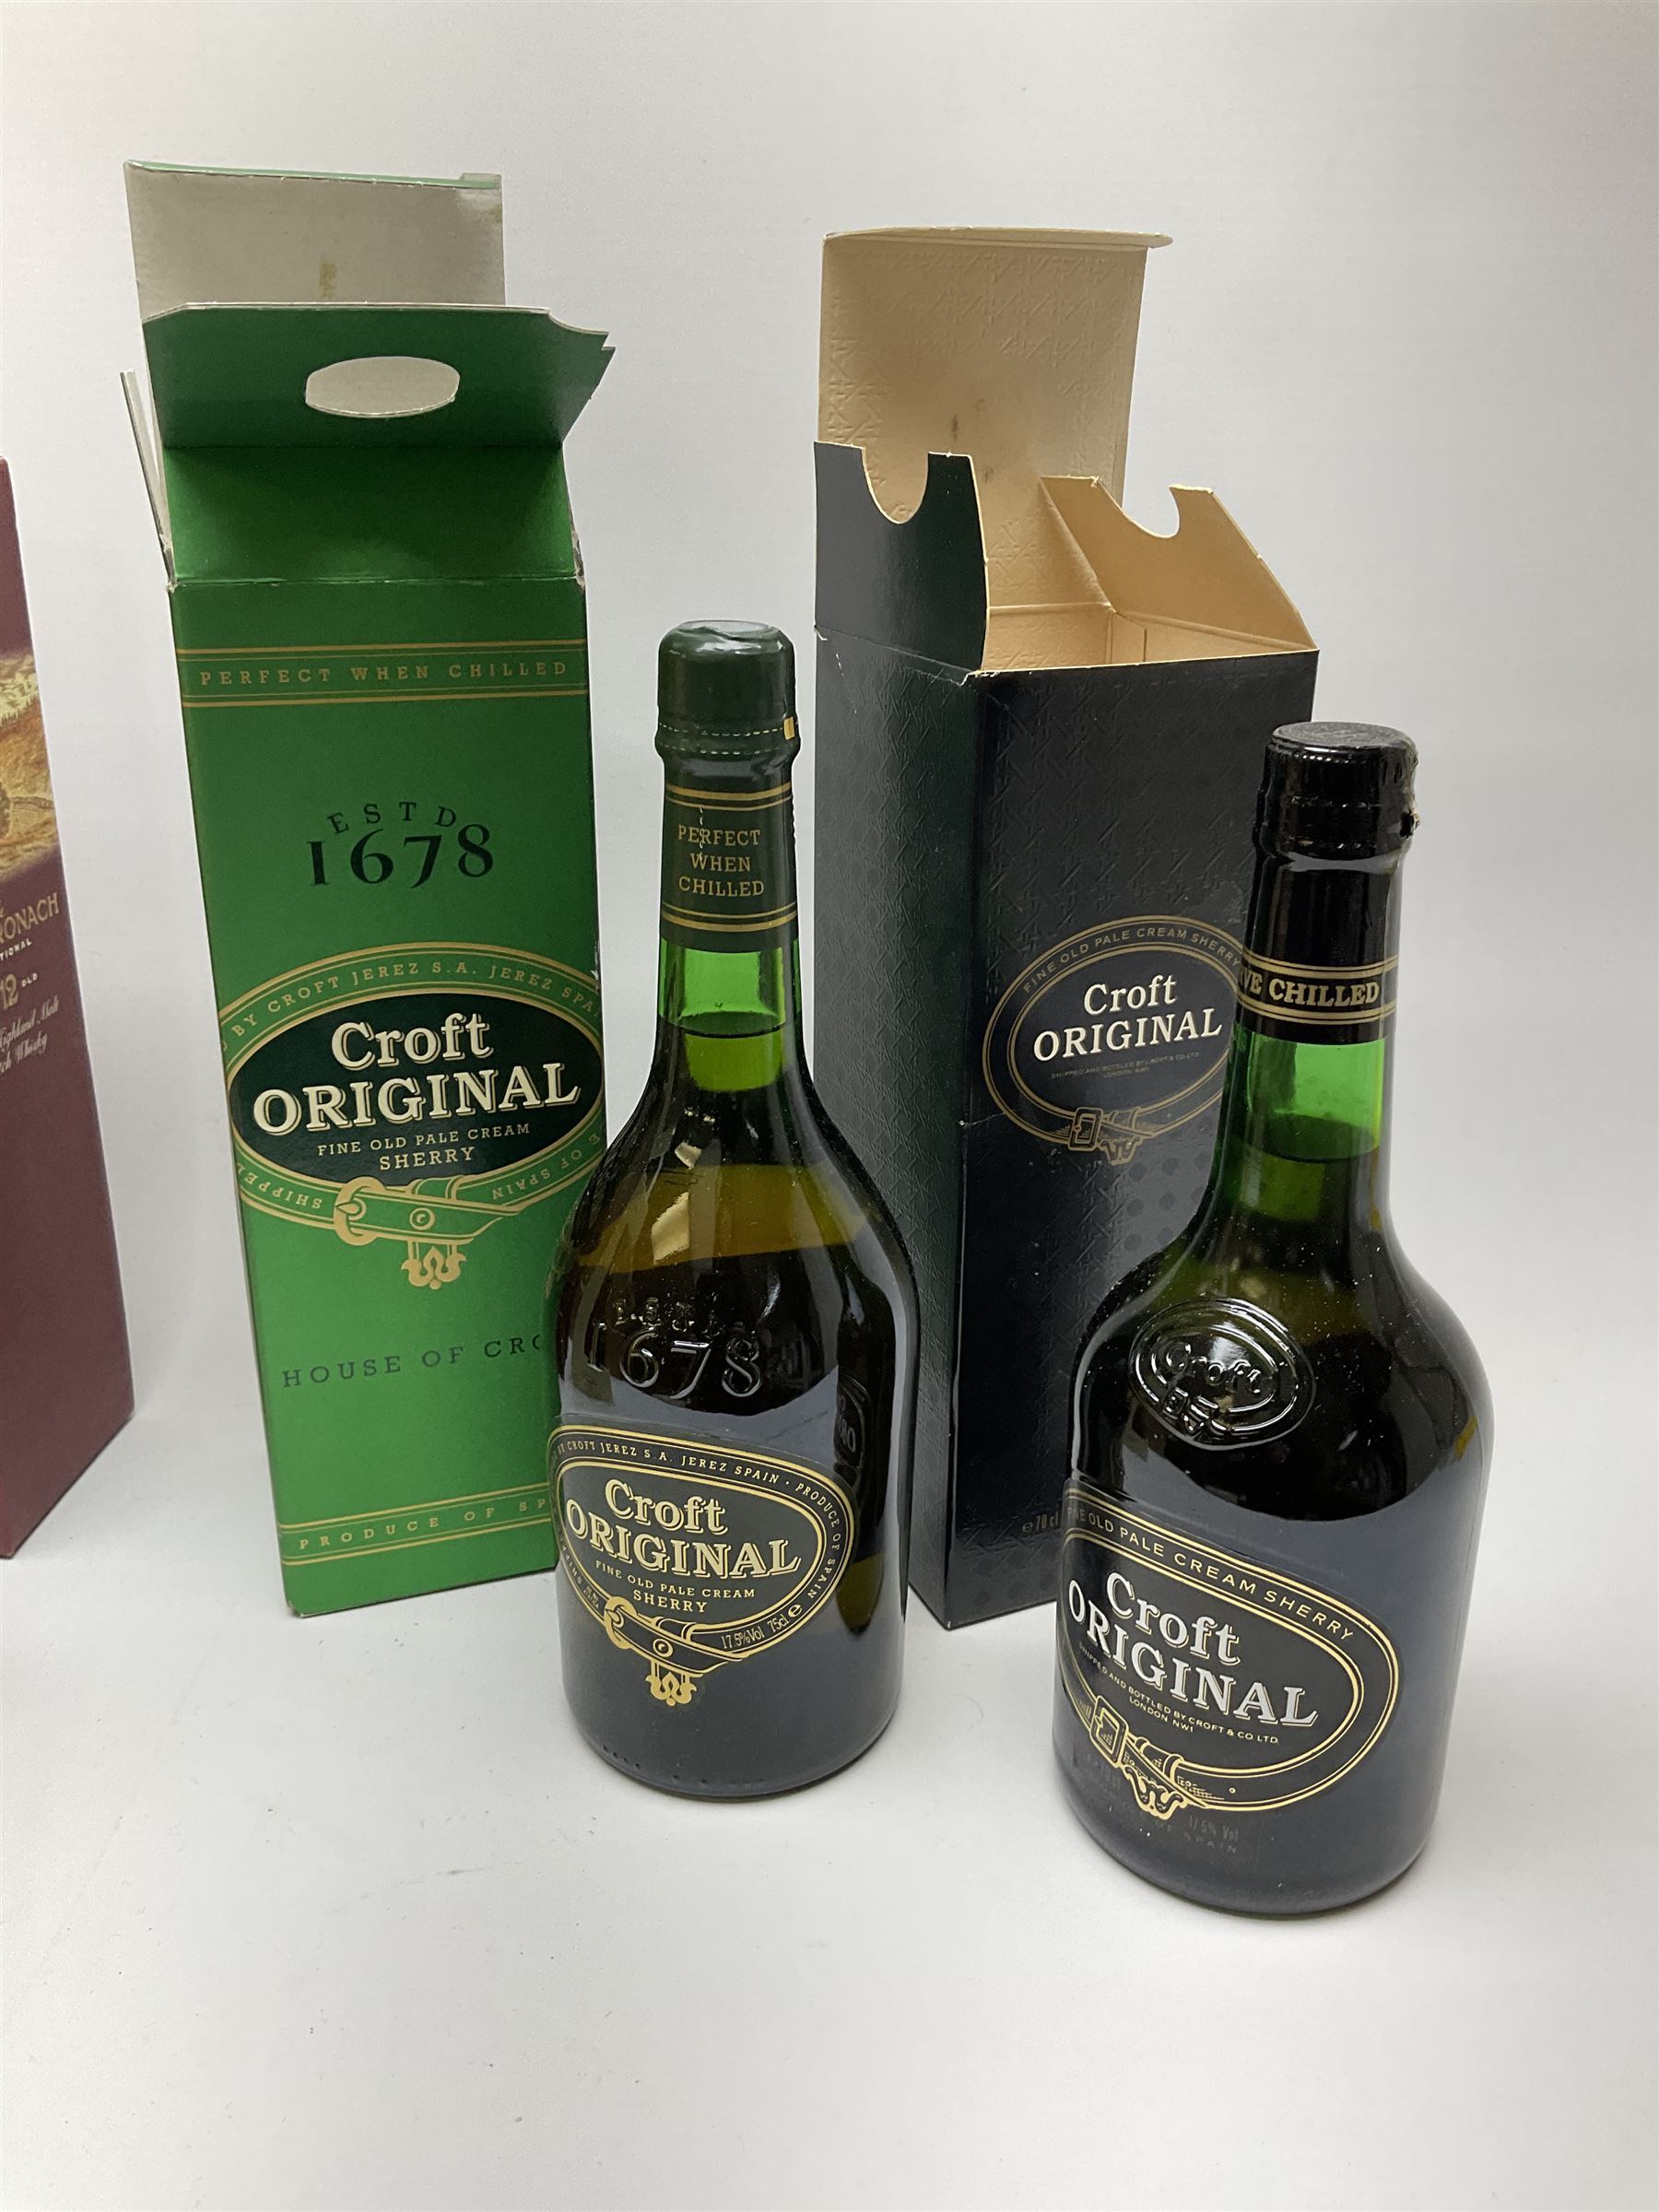 Bell's Millennium 2000 blended single malt and grain whisky aged 8 years - Image 3 of 3